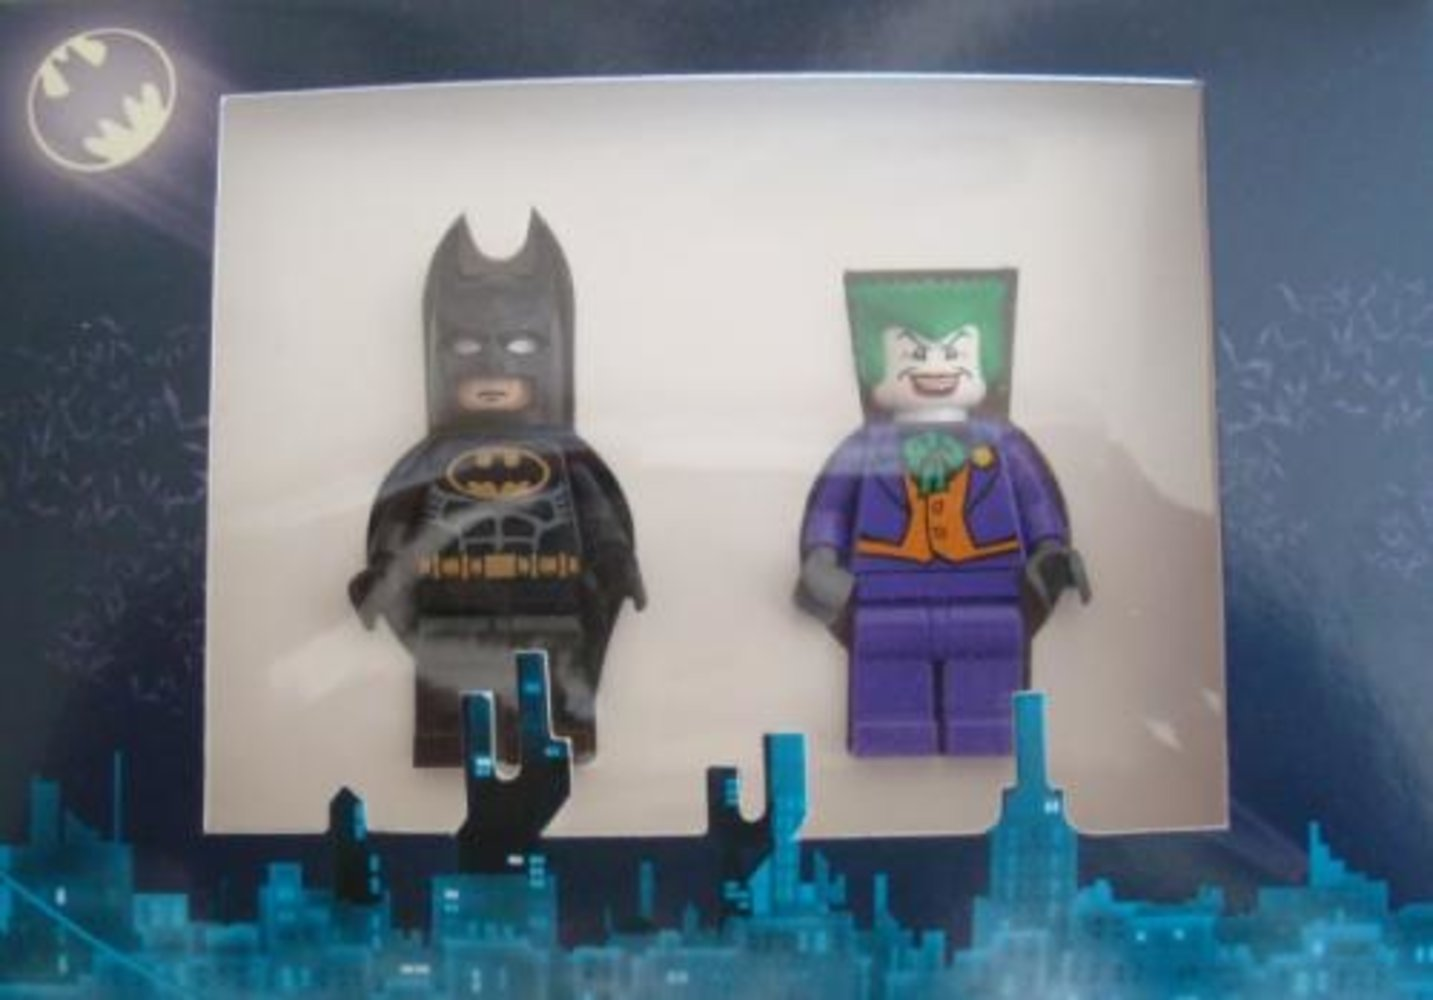 Batman and Joker Minifig Pack - San Diego Comic-Con 2008 Exclusive